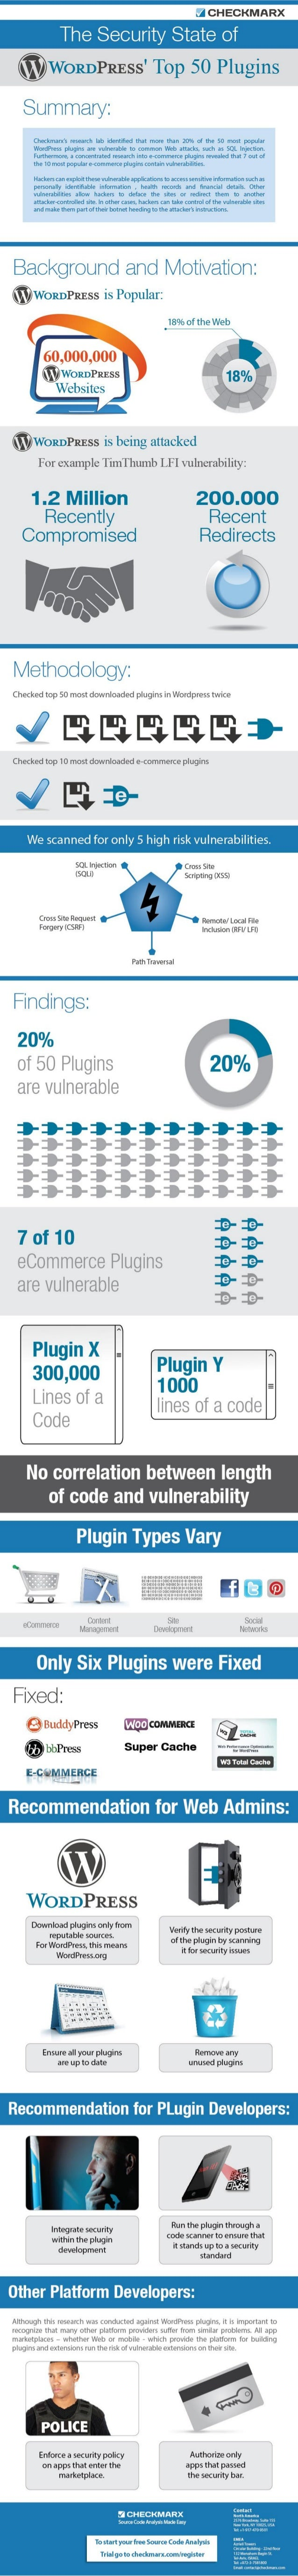 The Security State of The Most Popular WordPress Plug-Ins